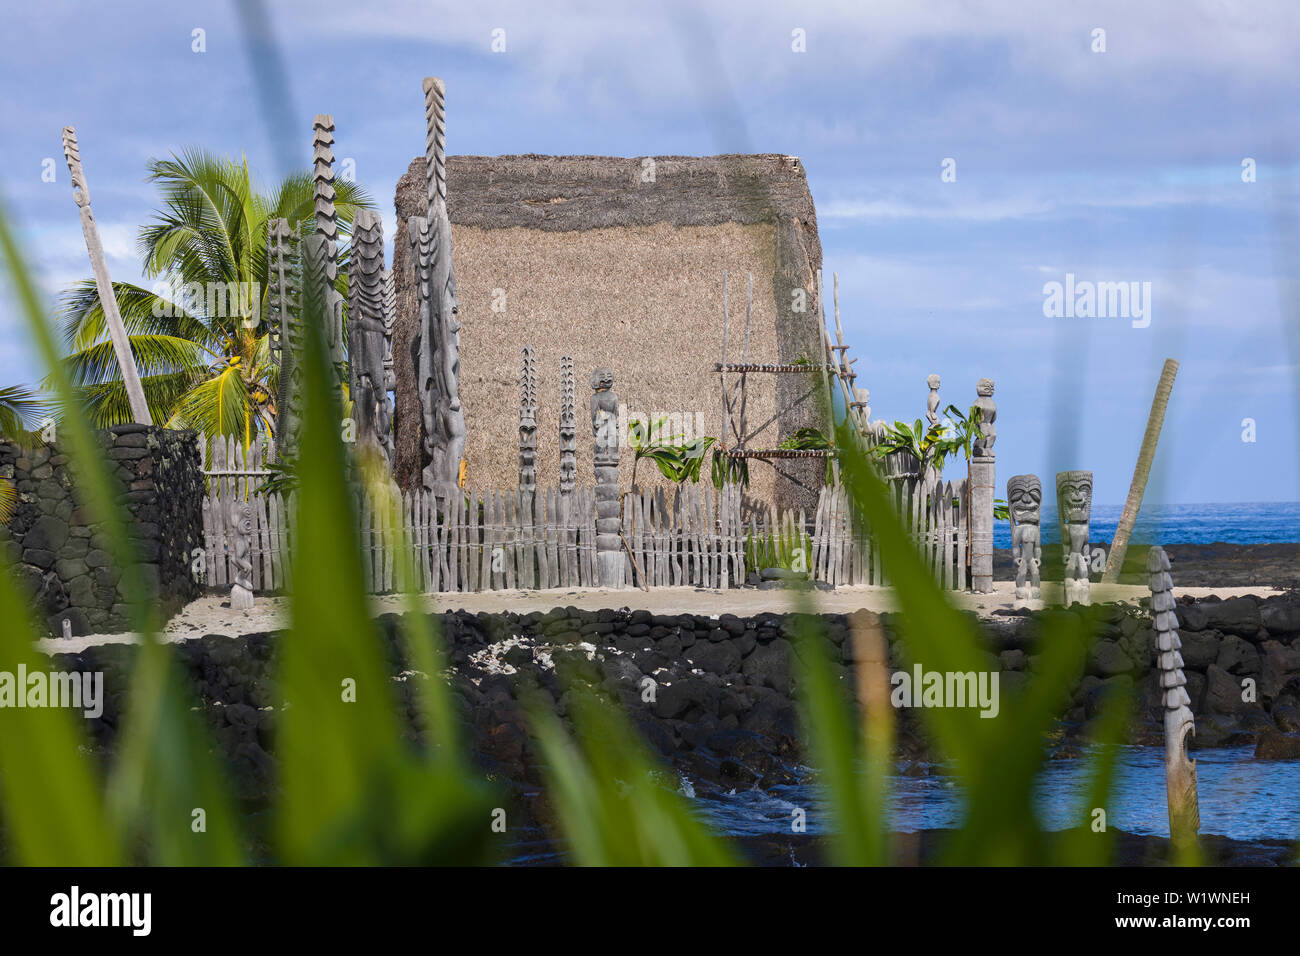 Pu'uhonua O Honaunau NP with Ale'ale'a Heiau in South Kona, Hawaii - Stock Image